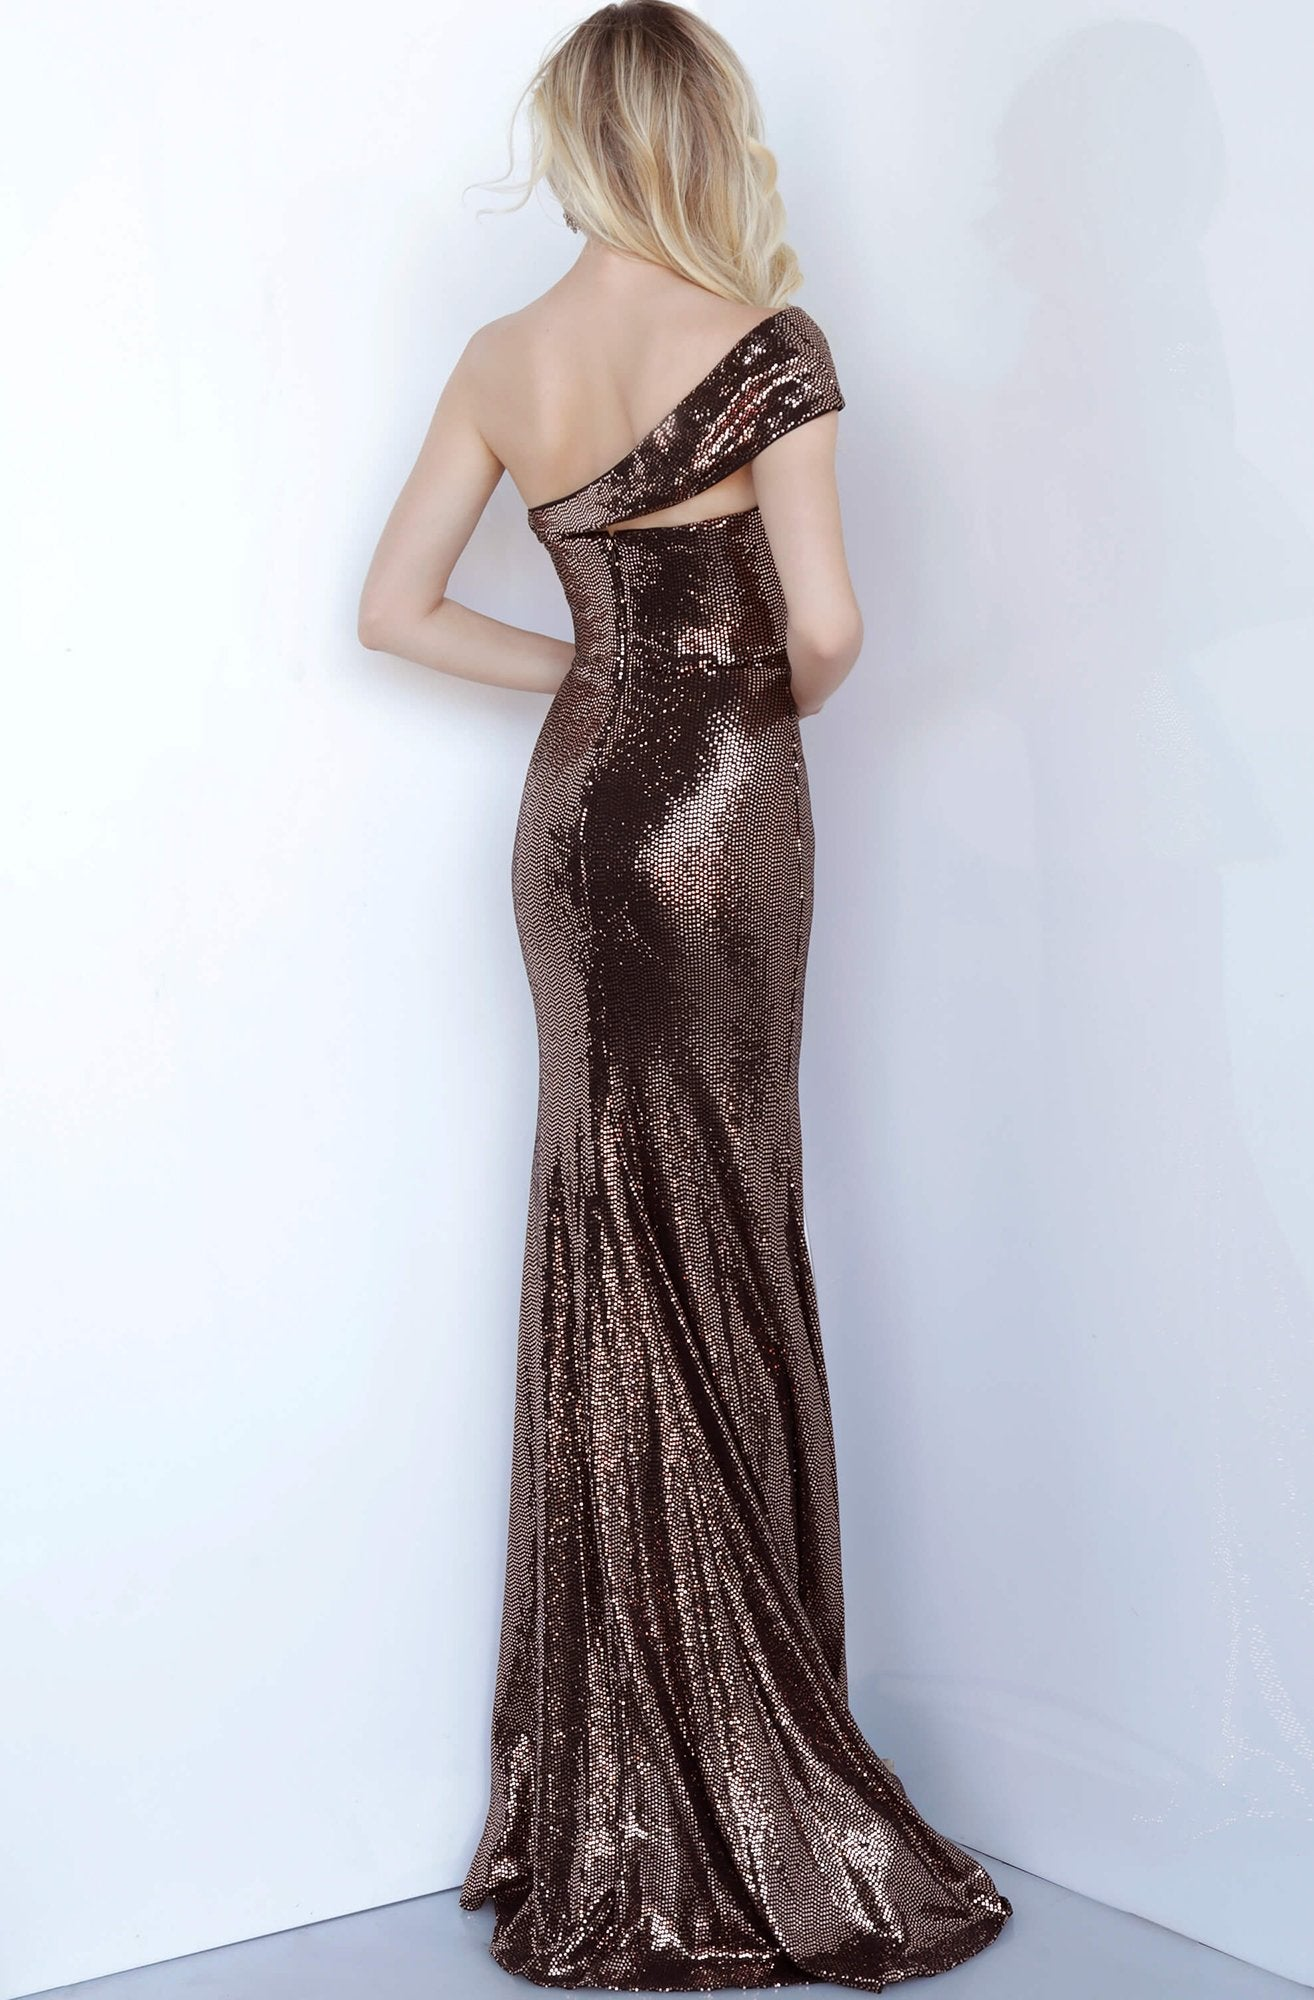 Jovani - 1100 Off Shoulder Fitted Metallic Shimmer Long Evening Dress In Brown and Gold